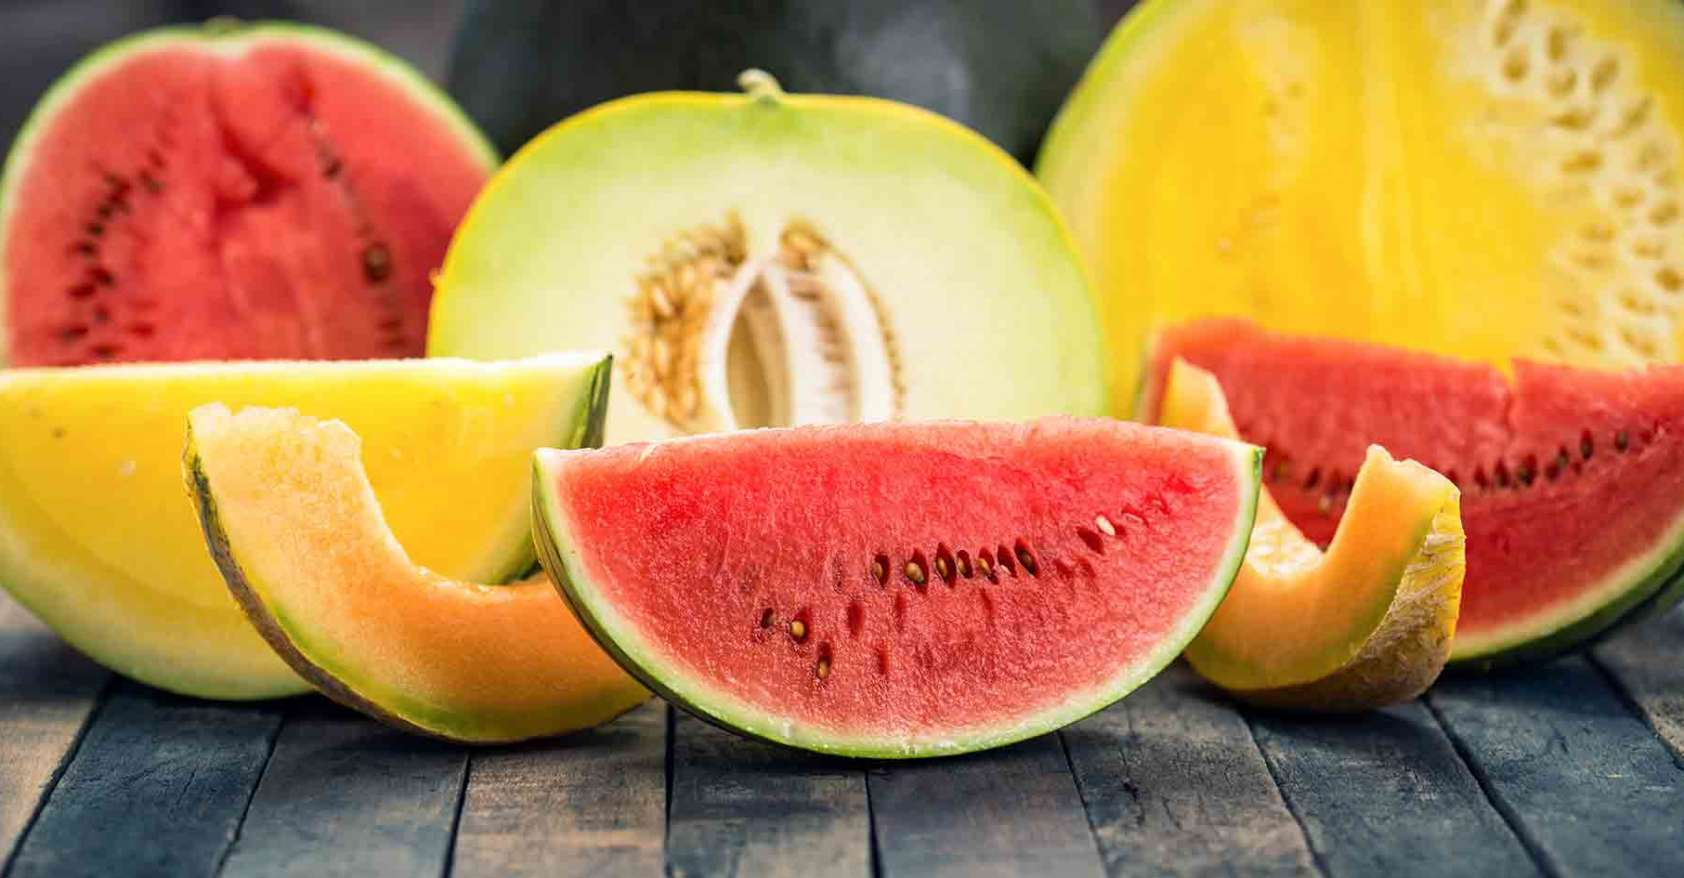 Watermelon, honeydew and canteloupe wedges and halves on wooden table pollen allergies